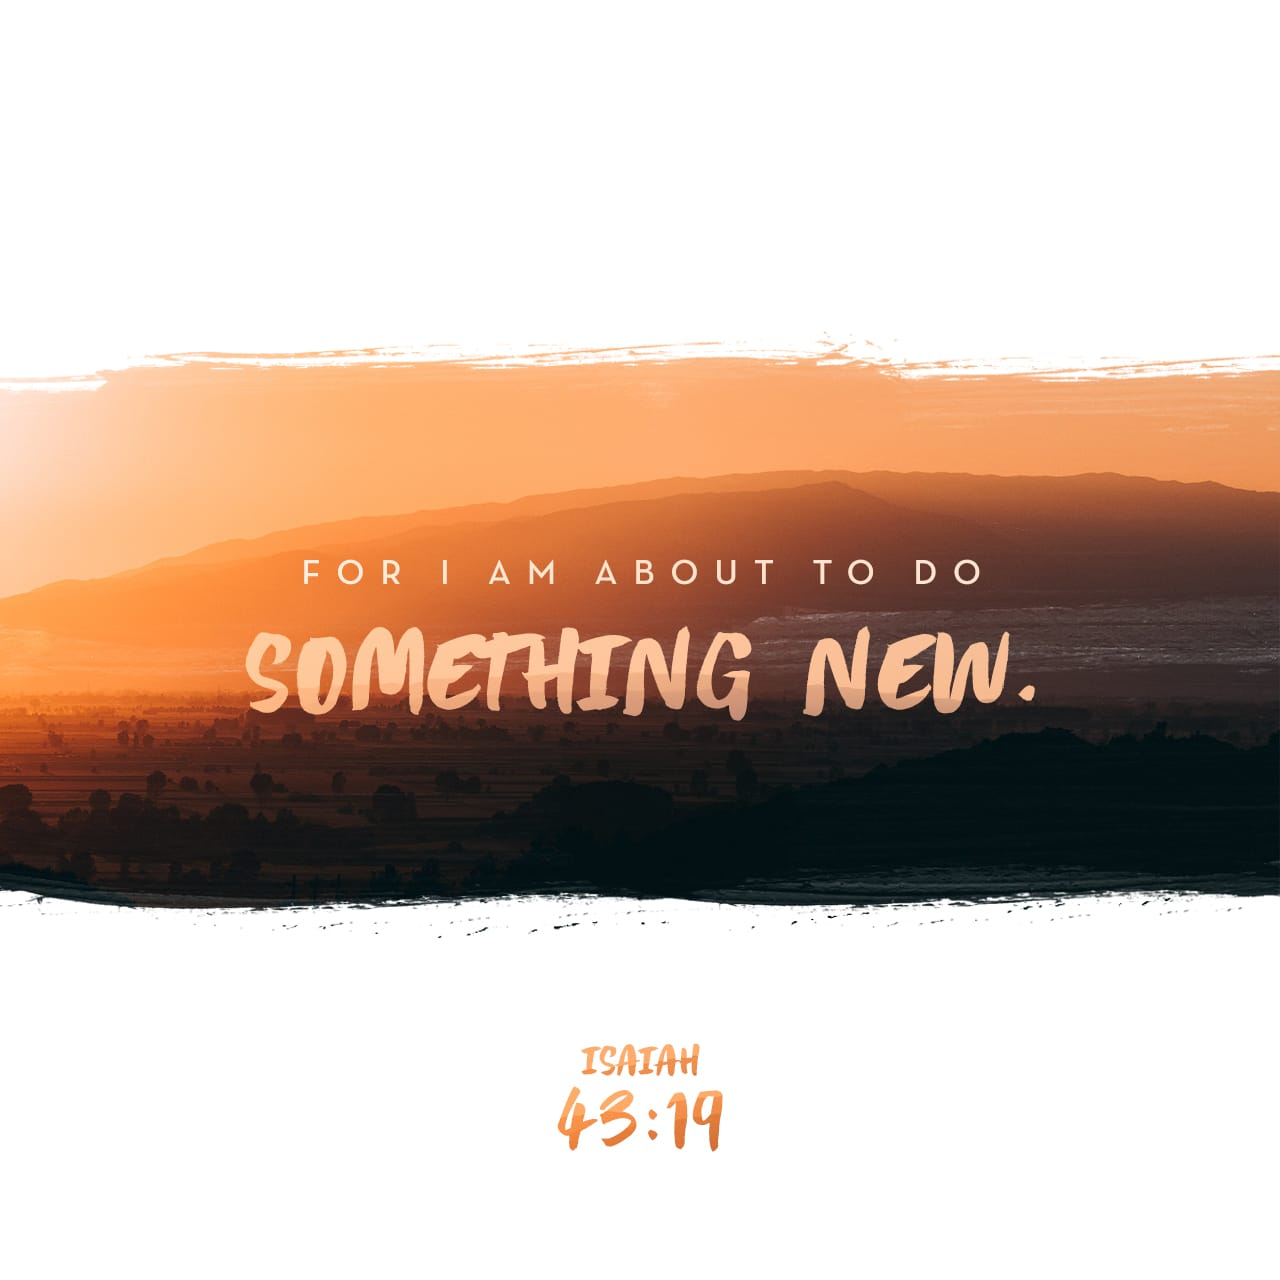 Isaiah 43:19 See, I am doing a new thing! Now it springs up; do you not perceive it? I am making a way in the wilderness and streams in the wasteland. | New International Version (NIV)